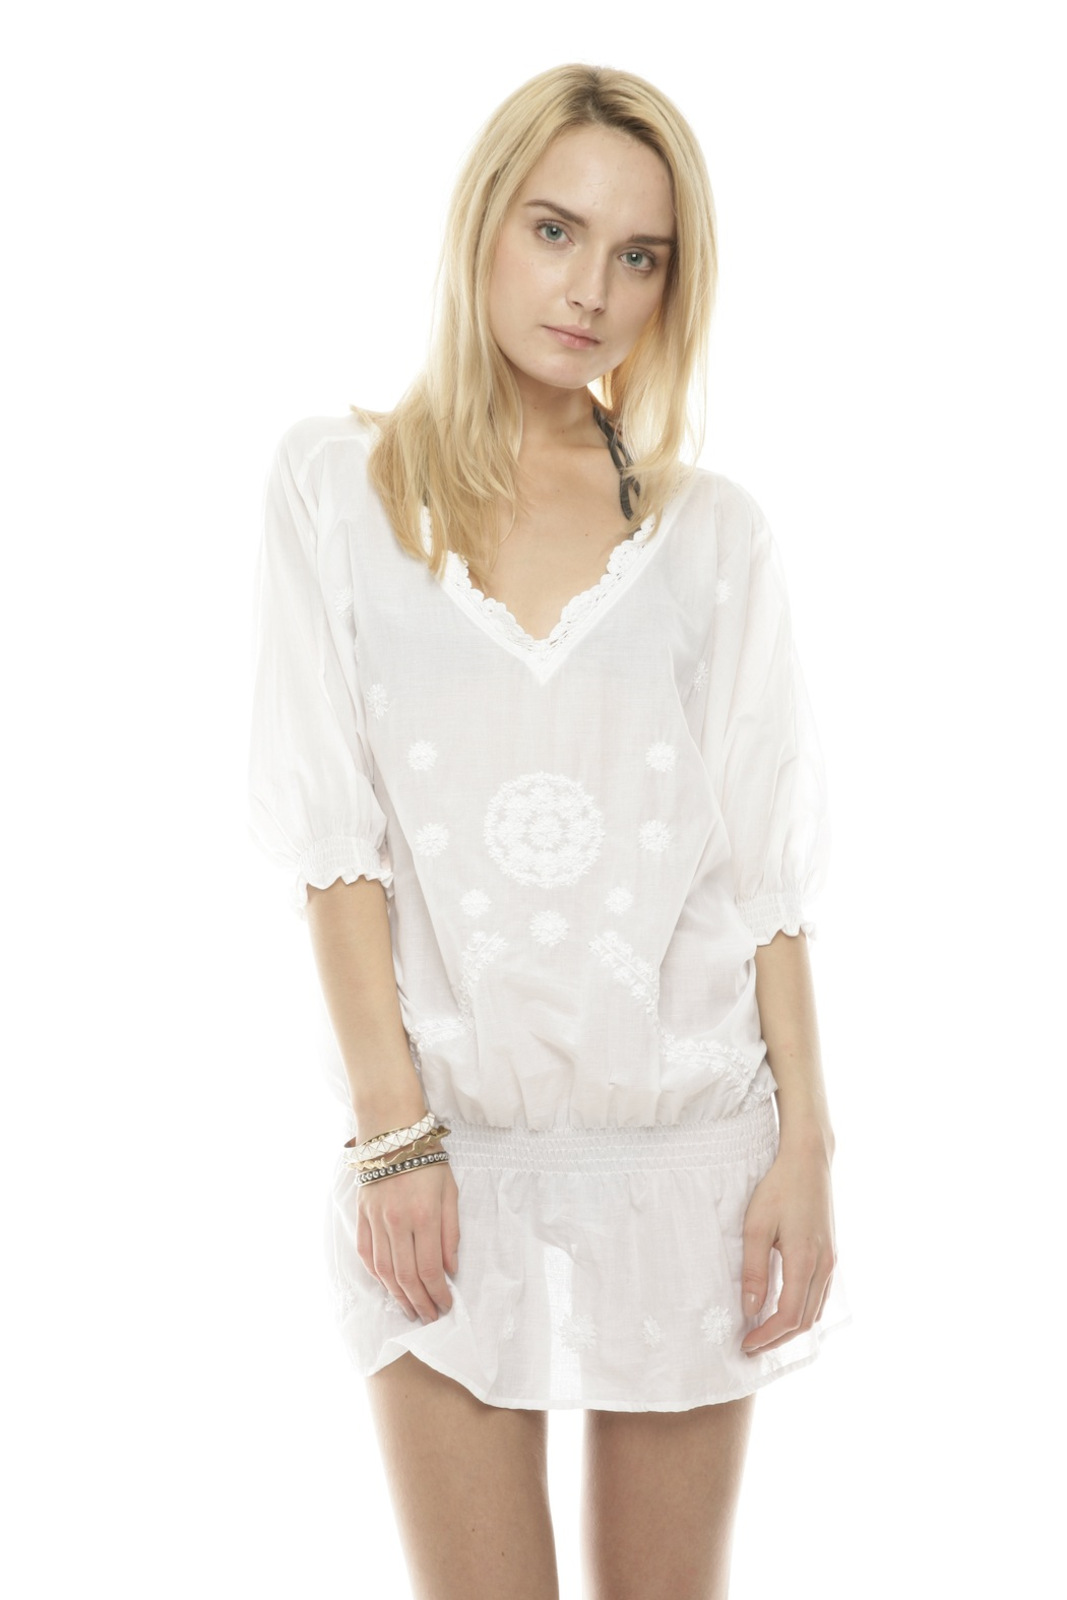 Buy Figue Women's White Sophie Embroidered Cotton Tunic/Dress. Similar products also available. SALE now on!Price: $